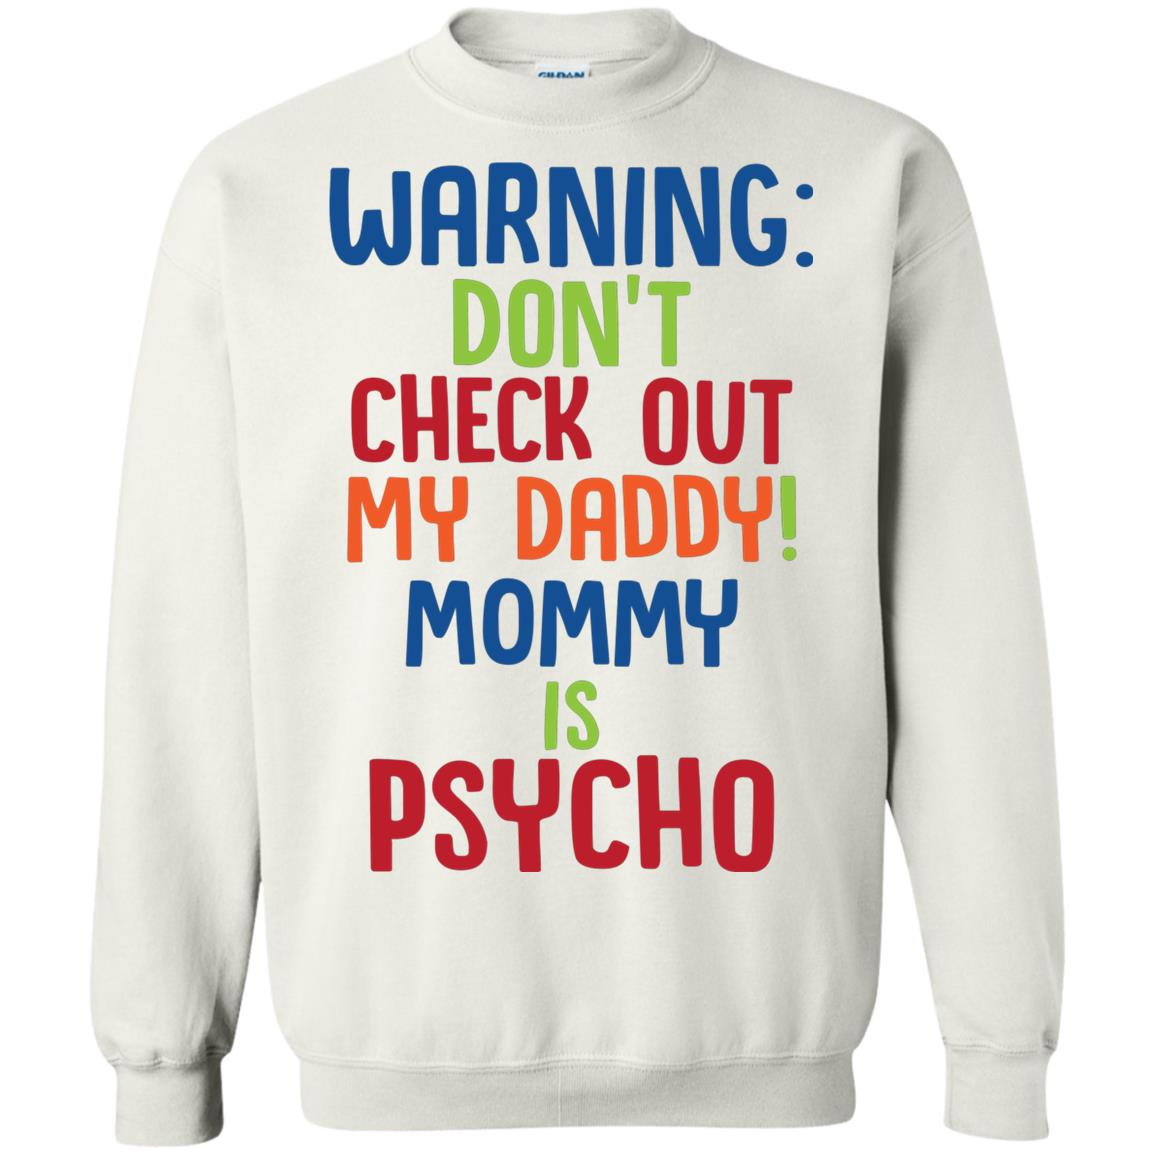 Warning don't check out my daddy mommy is psycho